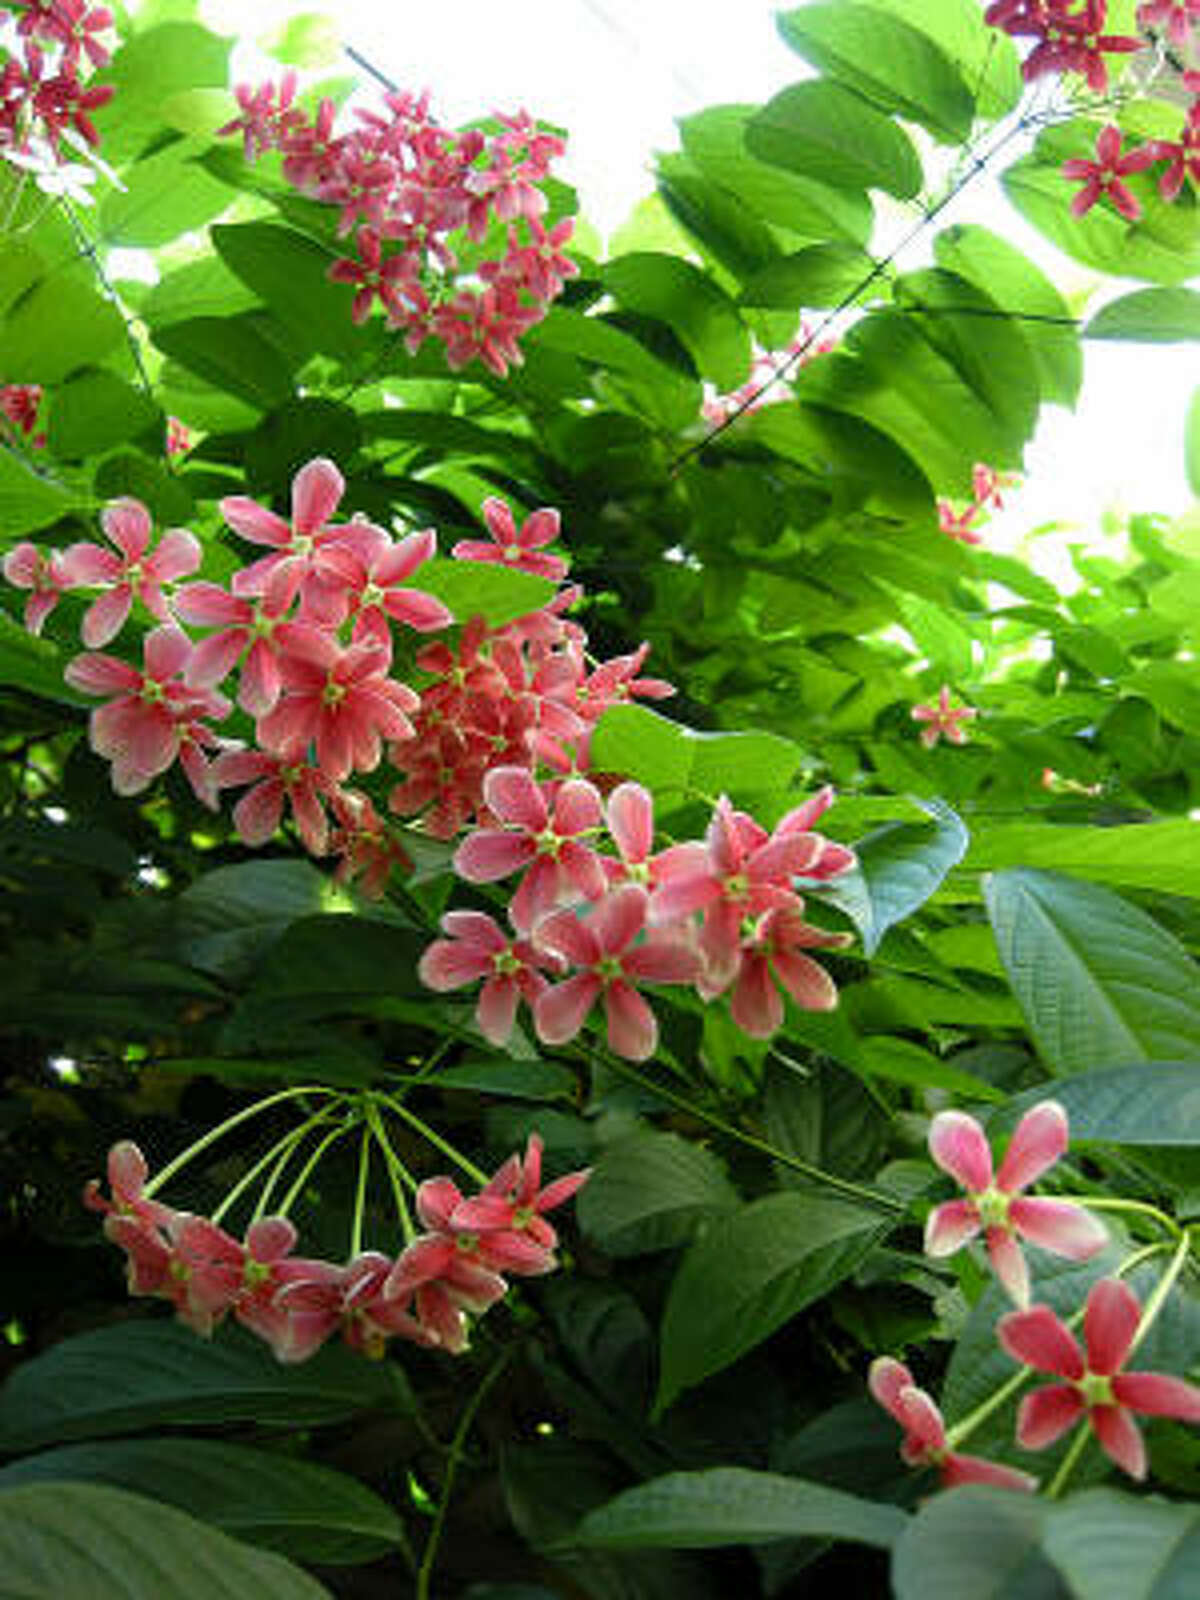 Rangoon creeper vines love the heat. The flowers change colors as they age, and they're quite fragrant.